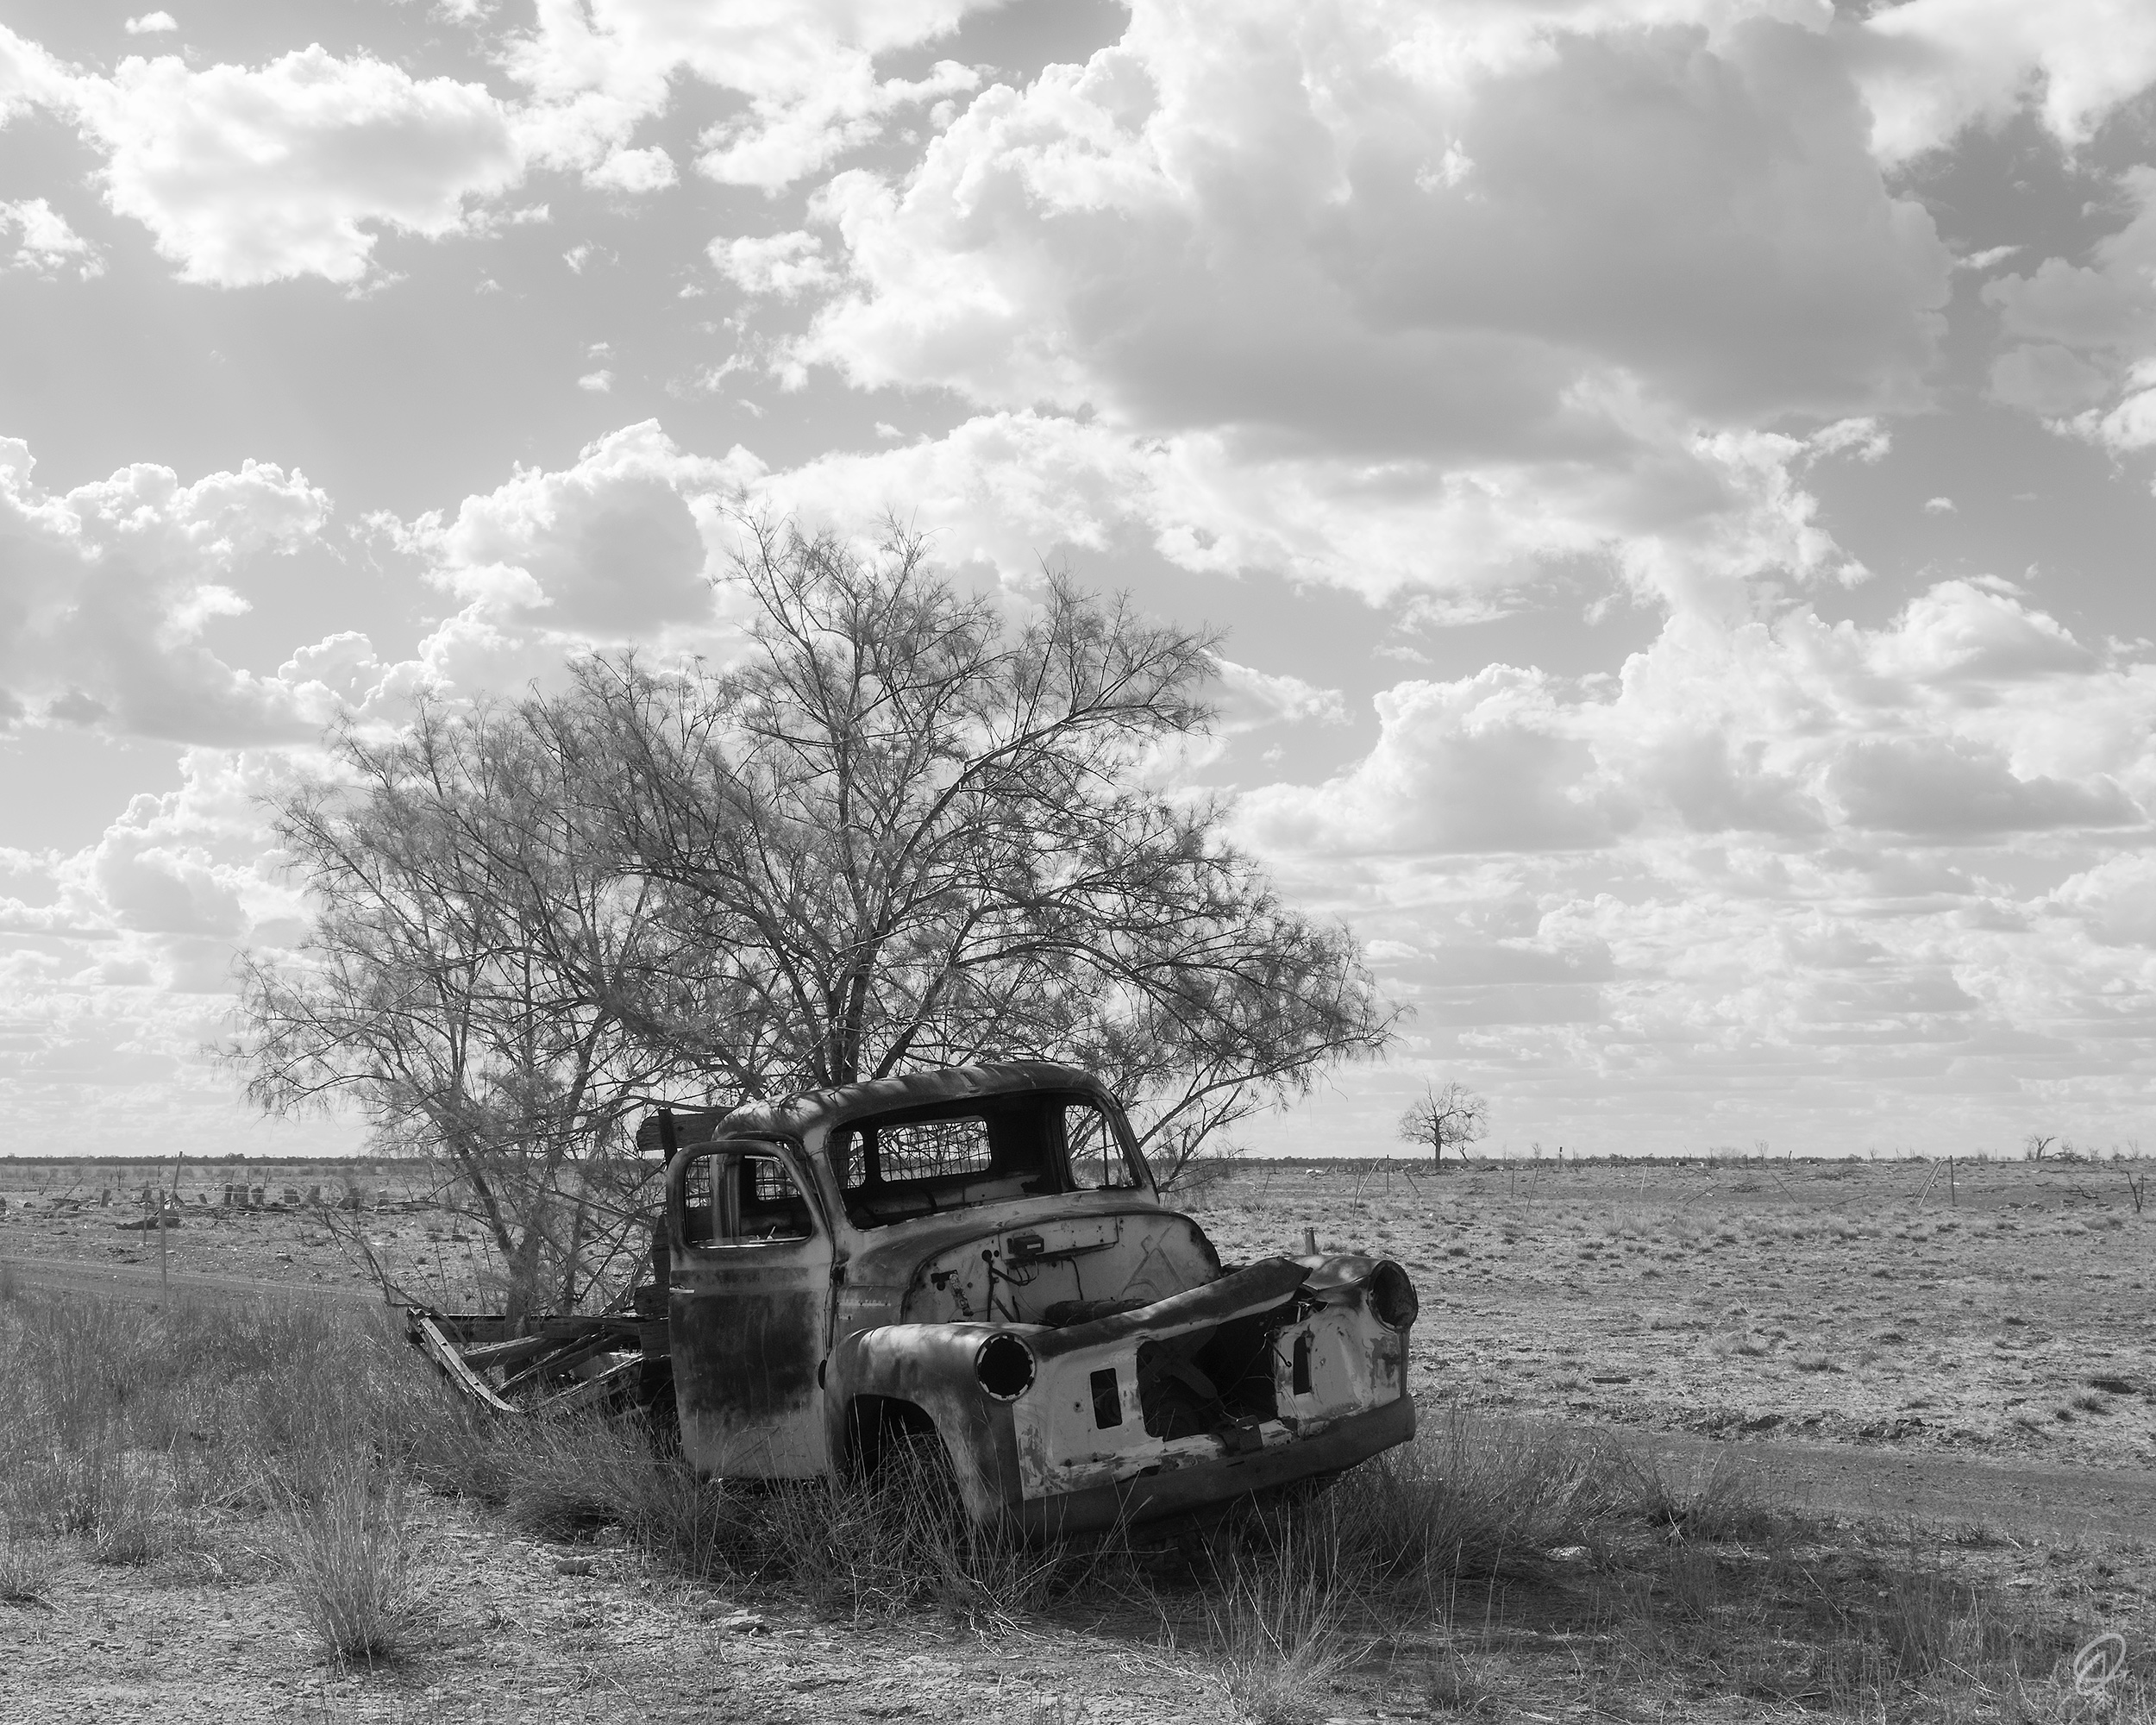 A rusty vintage car in the Australian outback